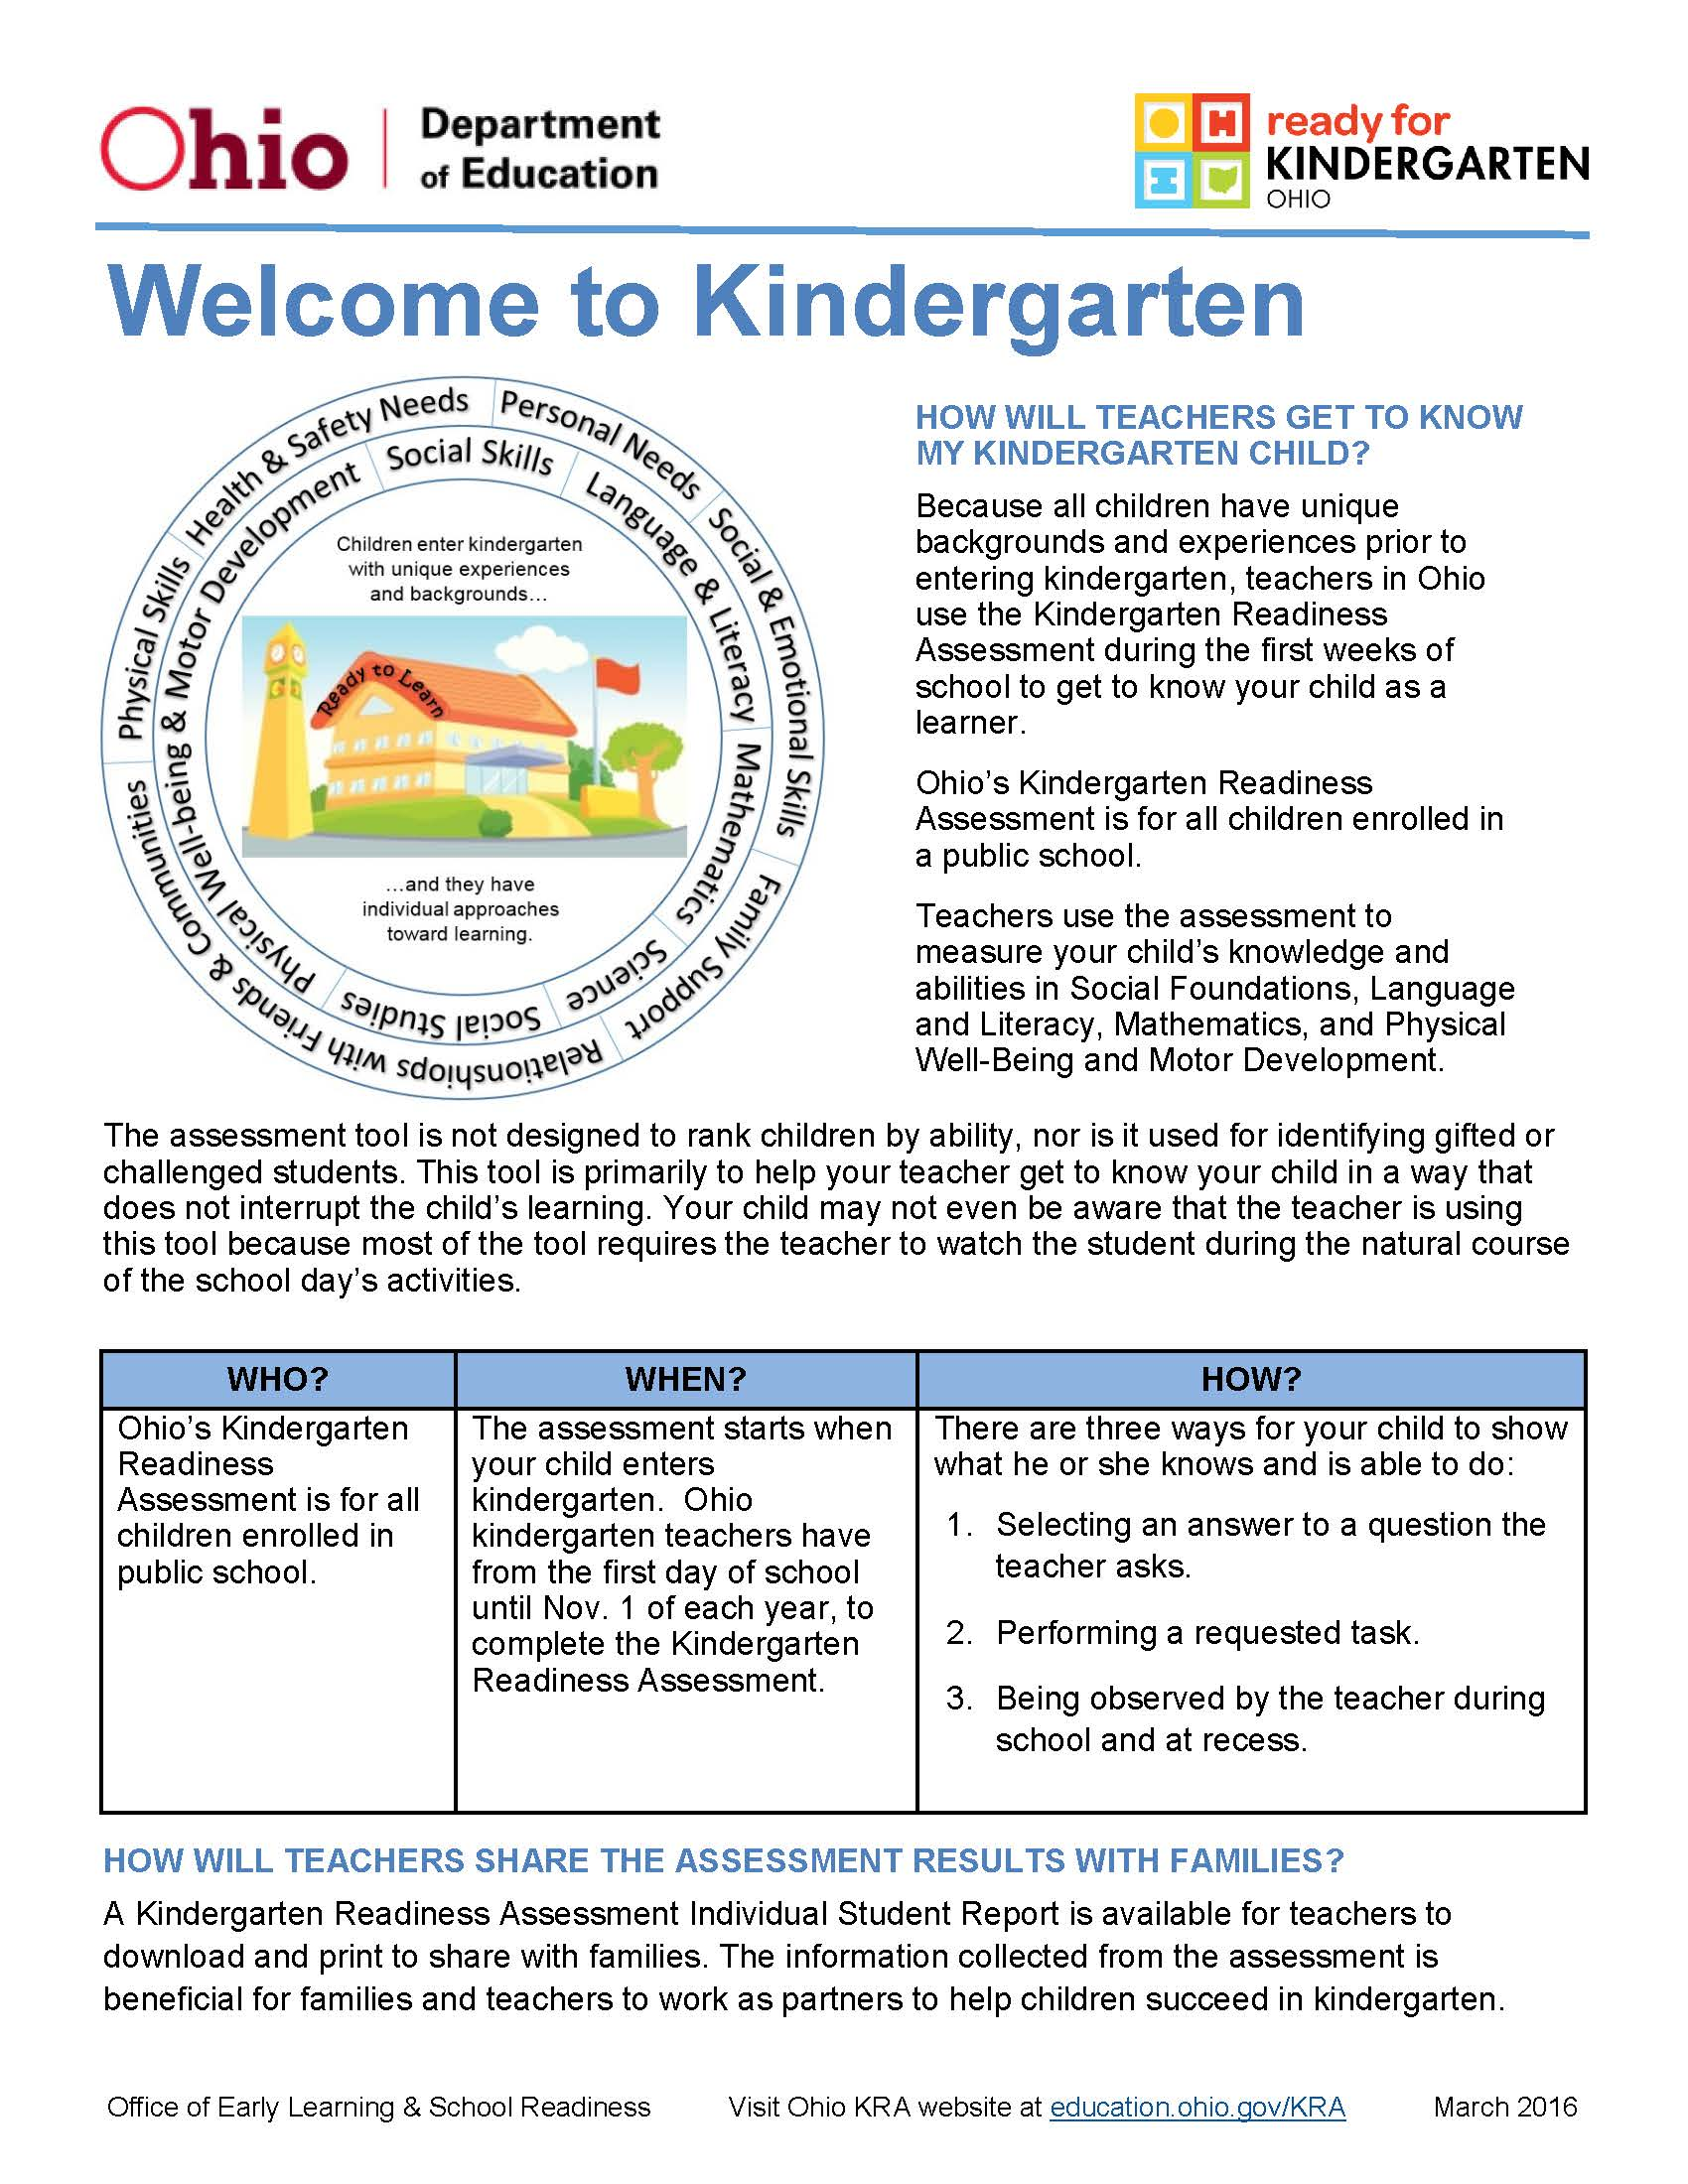 Welcome to Kindergarten - Link to PDF